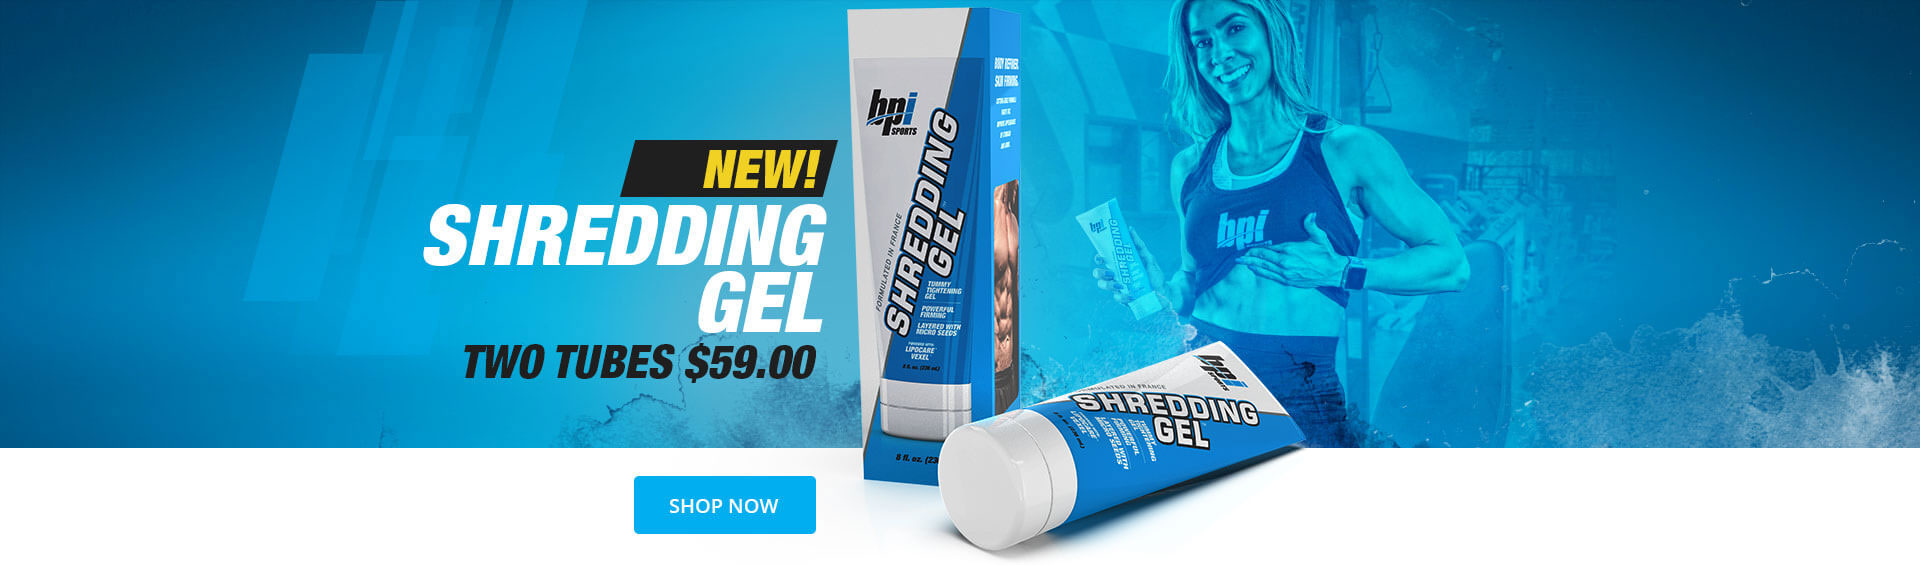 2019 Shredding Gel Launch